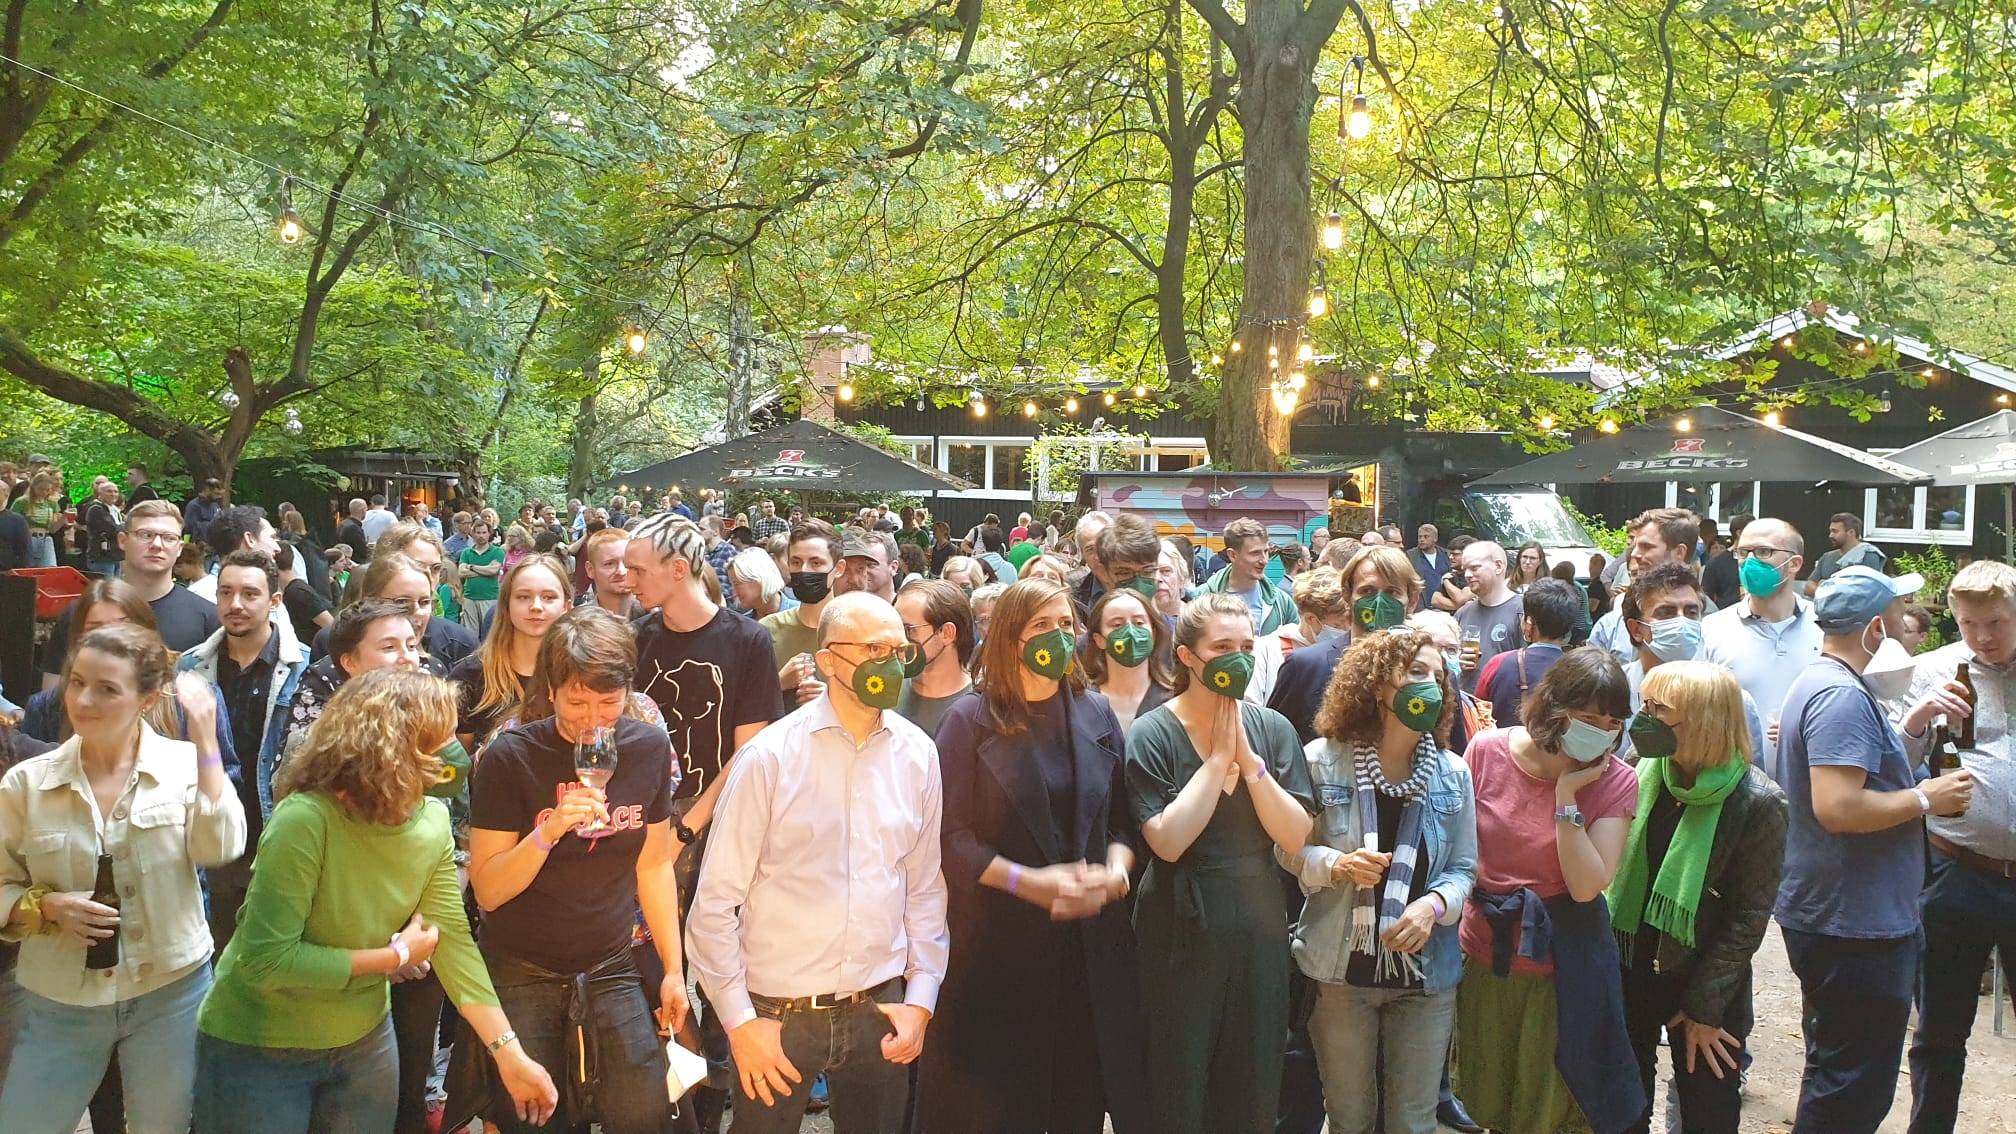 Green election party in Hamburg: claim missed